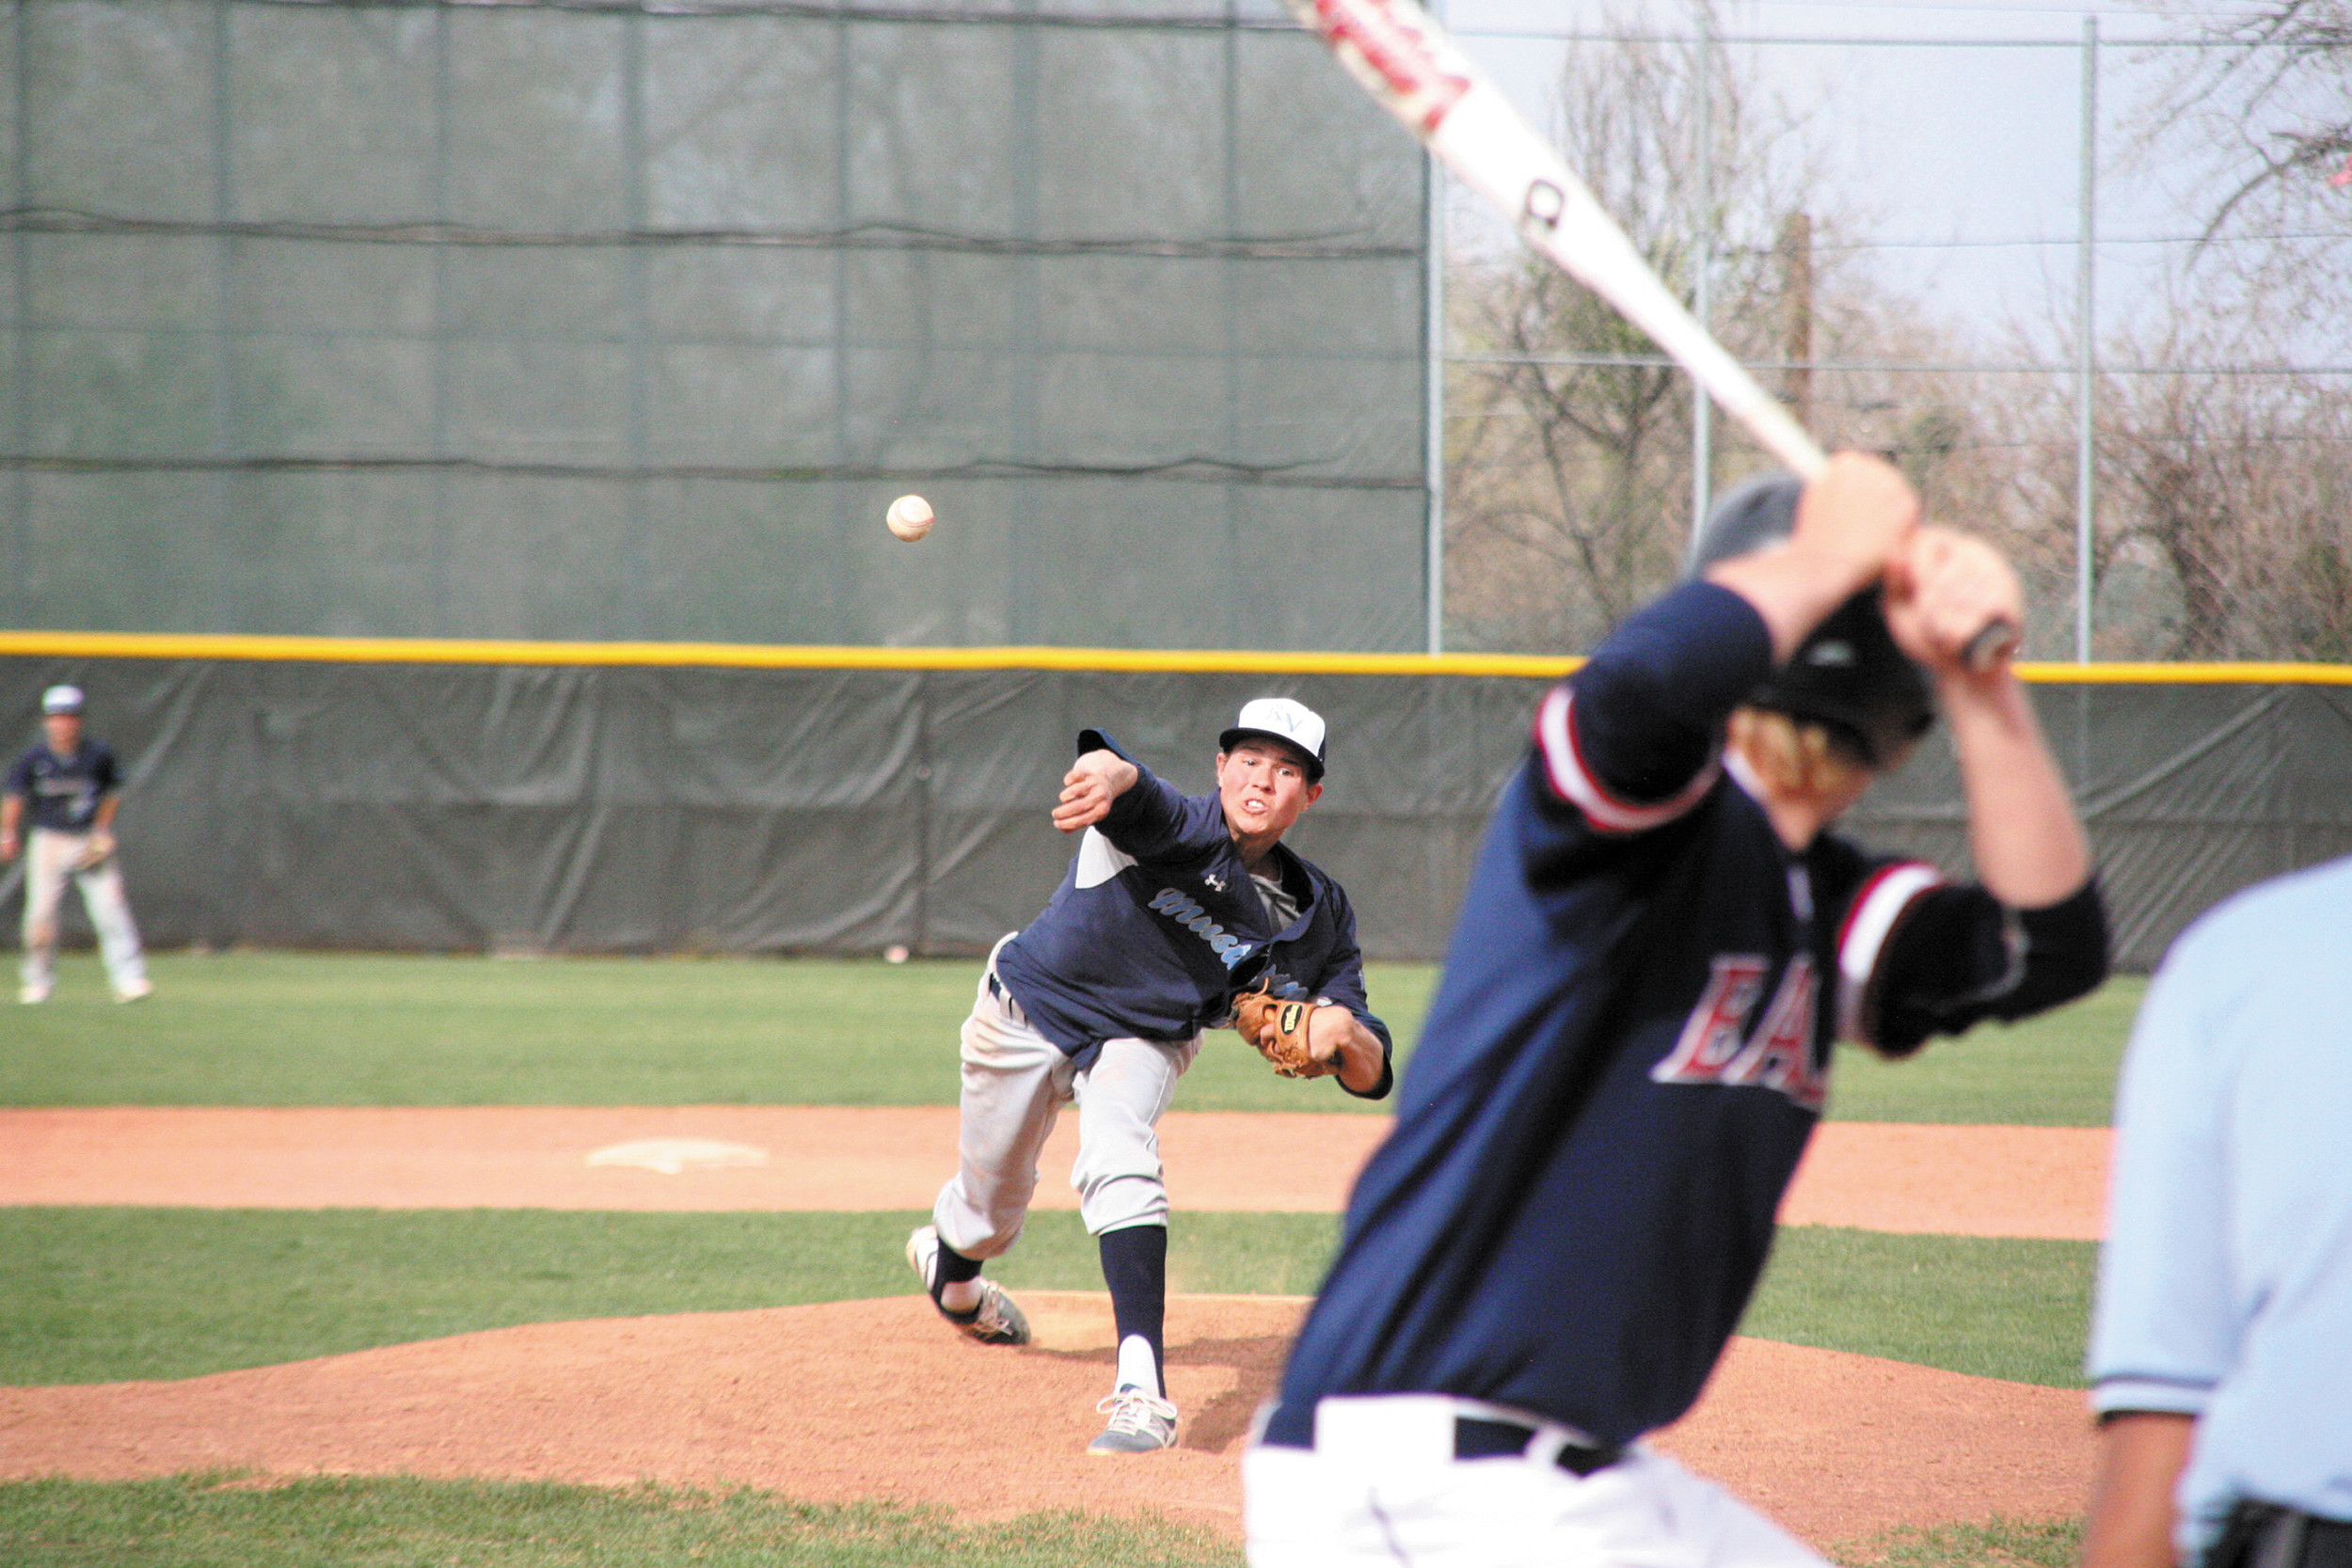 Ralston Valley senior pitcher Mitch Robinson serves up what was a nasty fastball for a strike, but the Mustangs were still outdone by Dakota Ridge 7-5 Saturday at All Star Park.